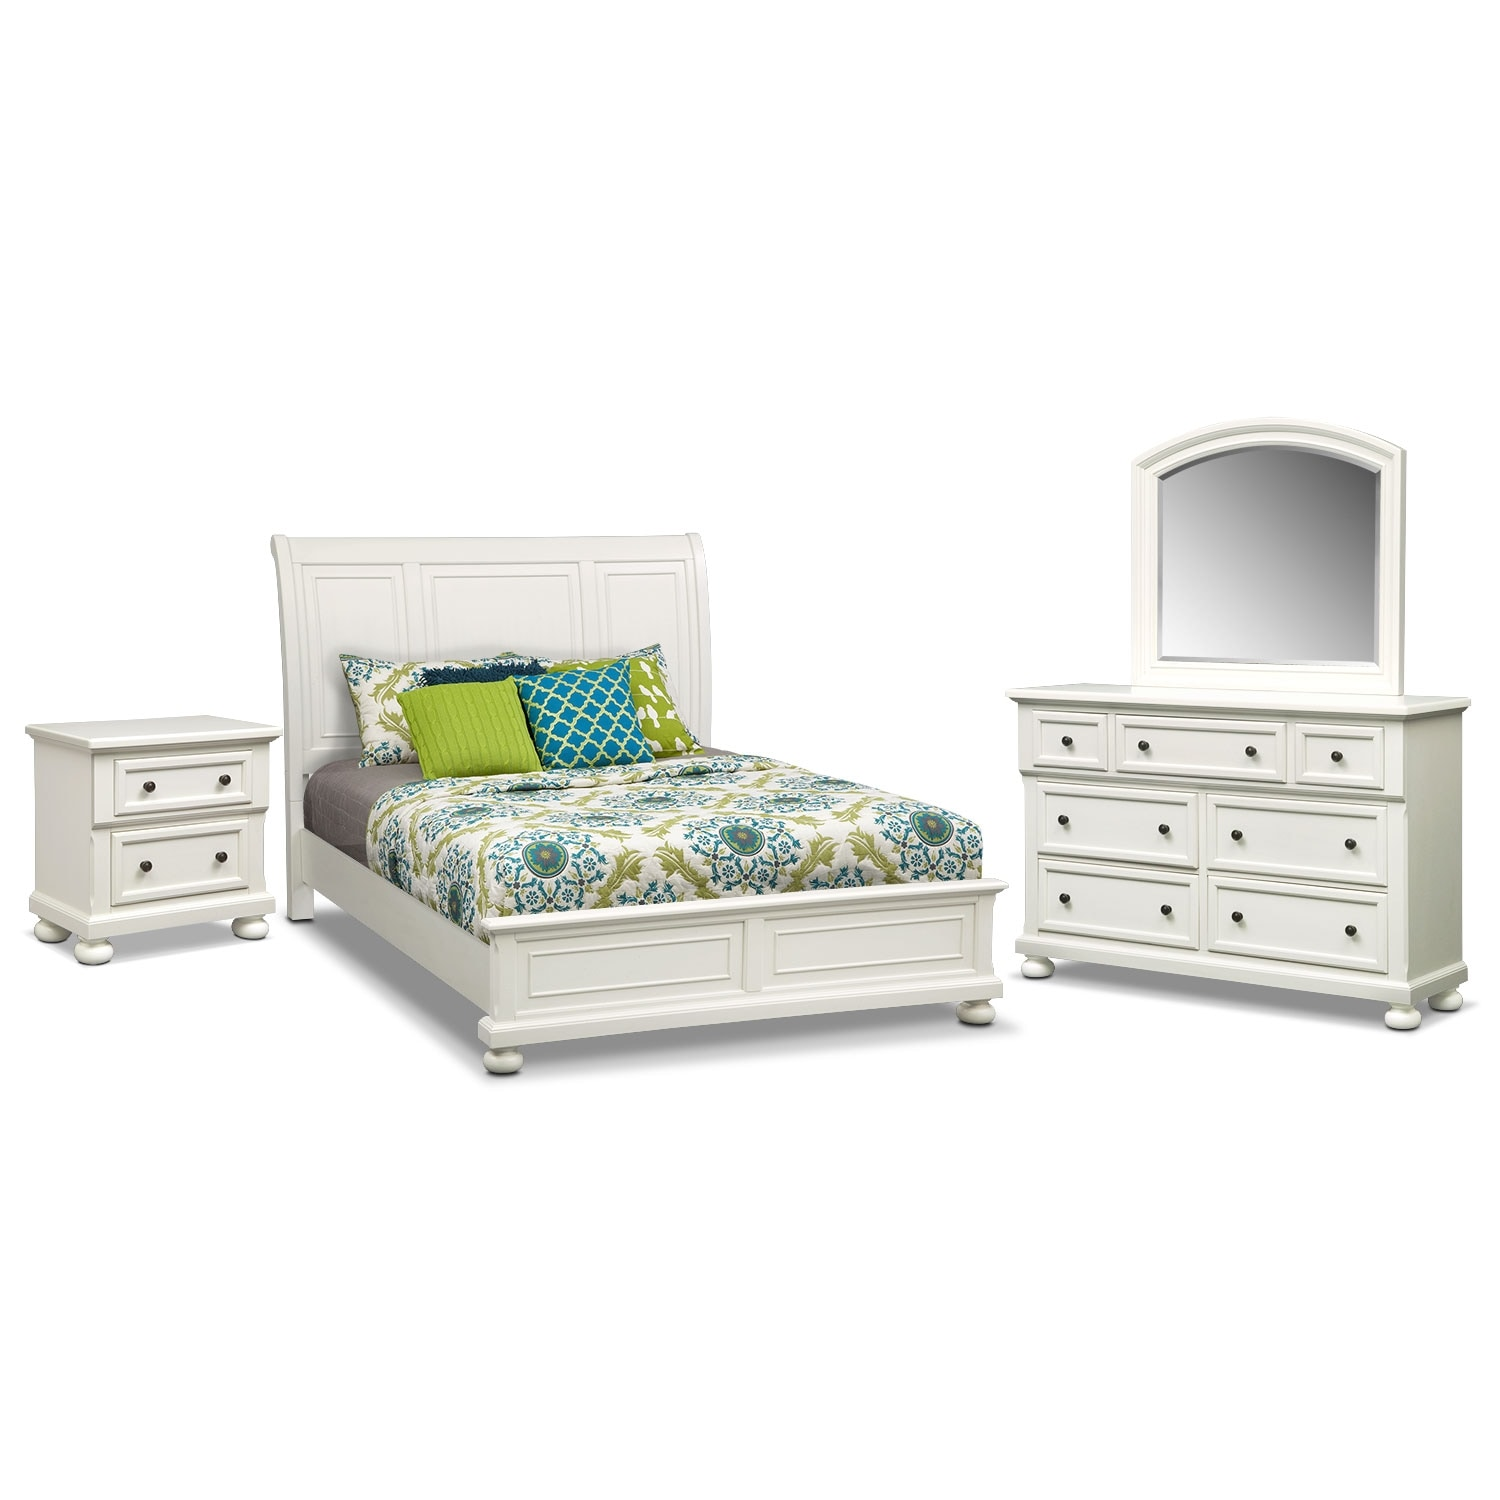 Hanover White 6 Pc. Queen Panel Bedroom Package